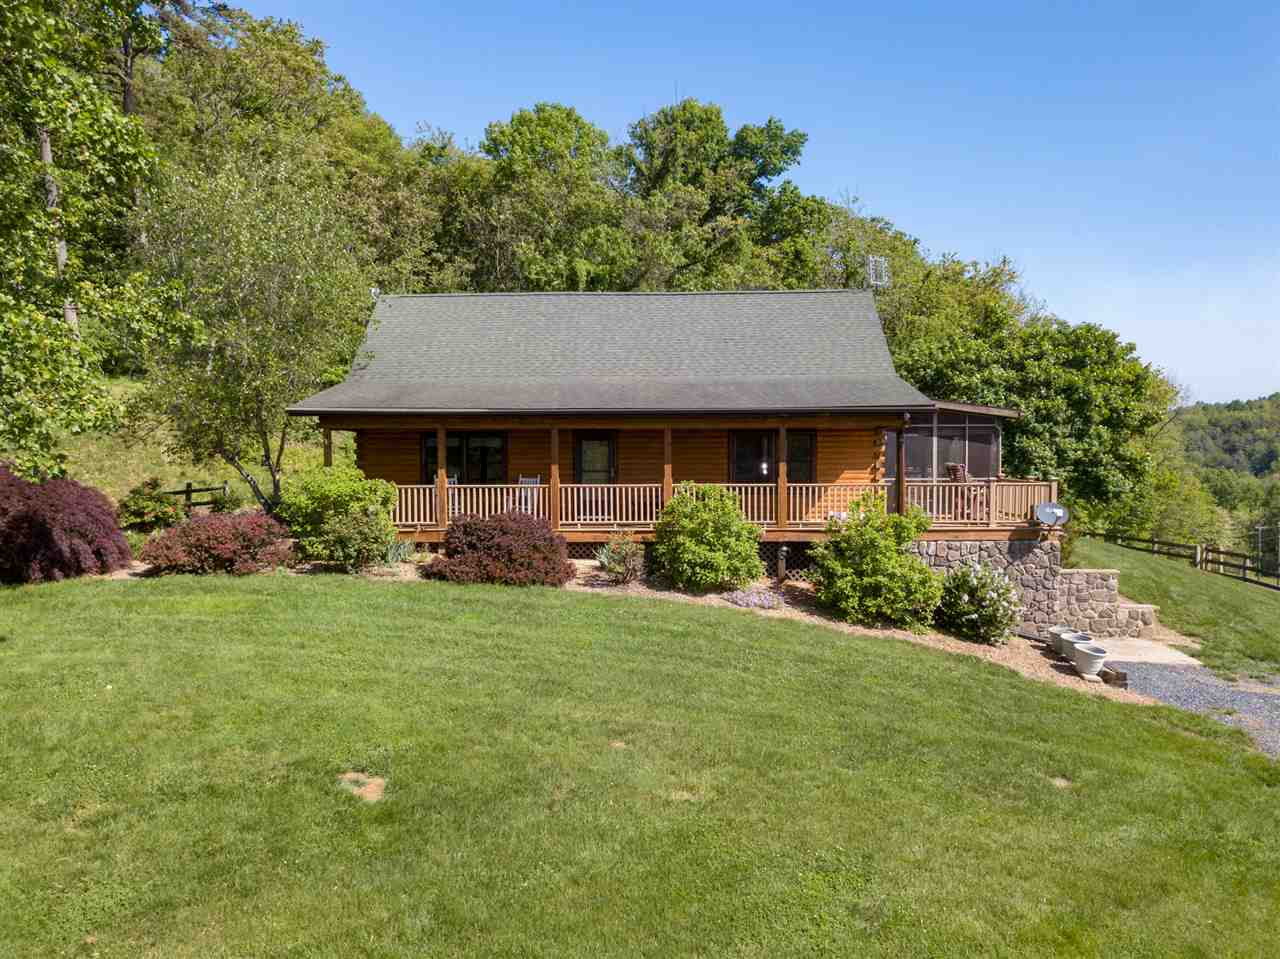 561 DICES SPRING RD, WEYERS CAVE, VA 24486